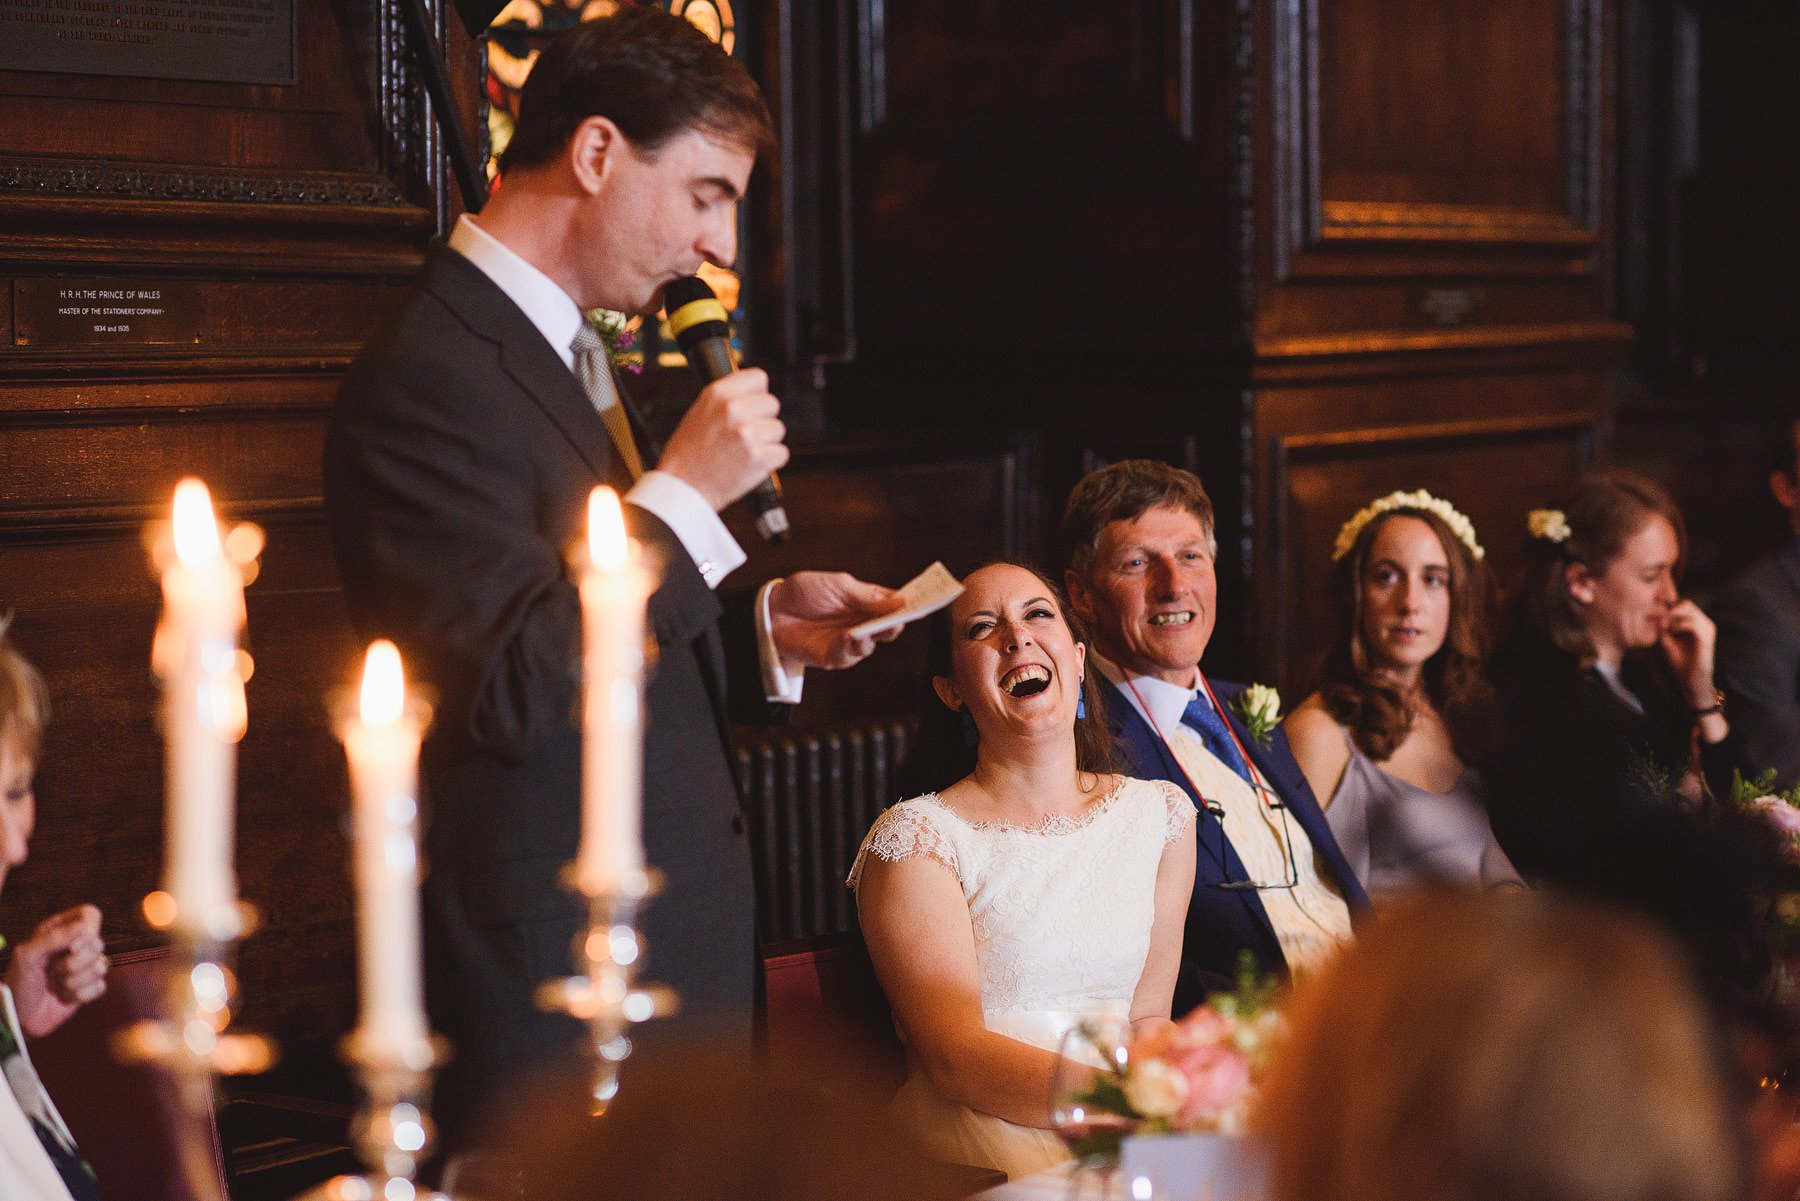 weddings at stationers hall in london